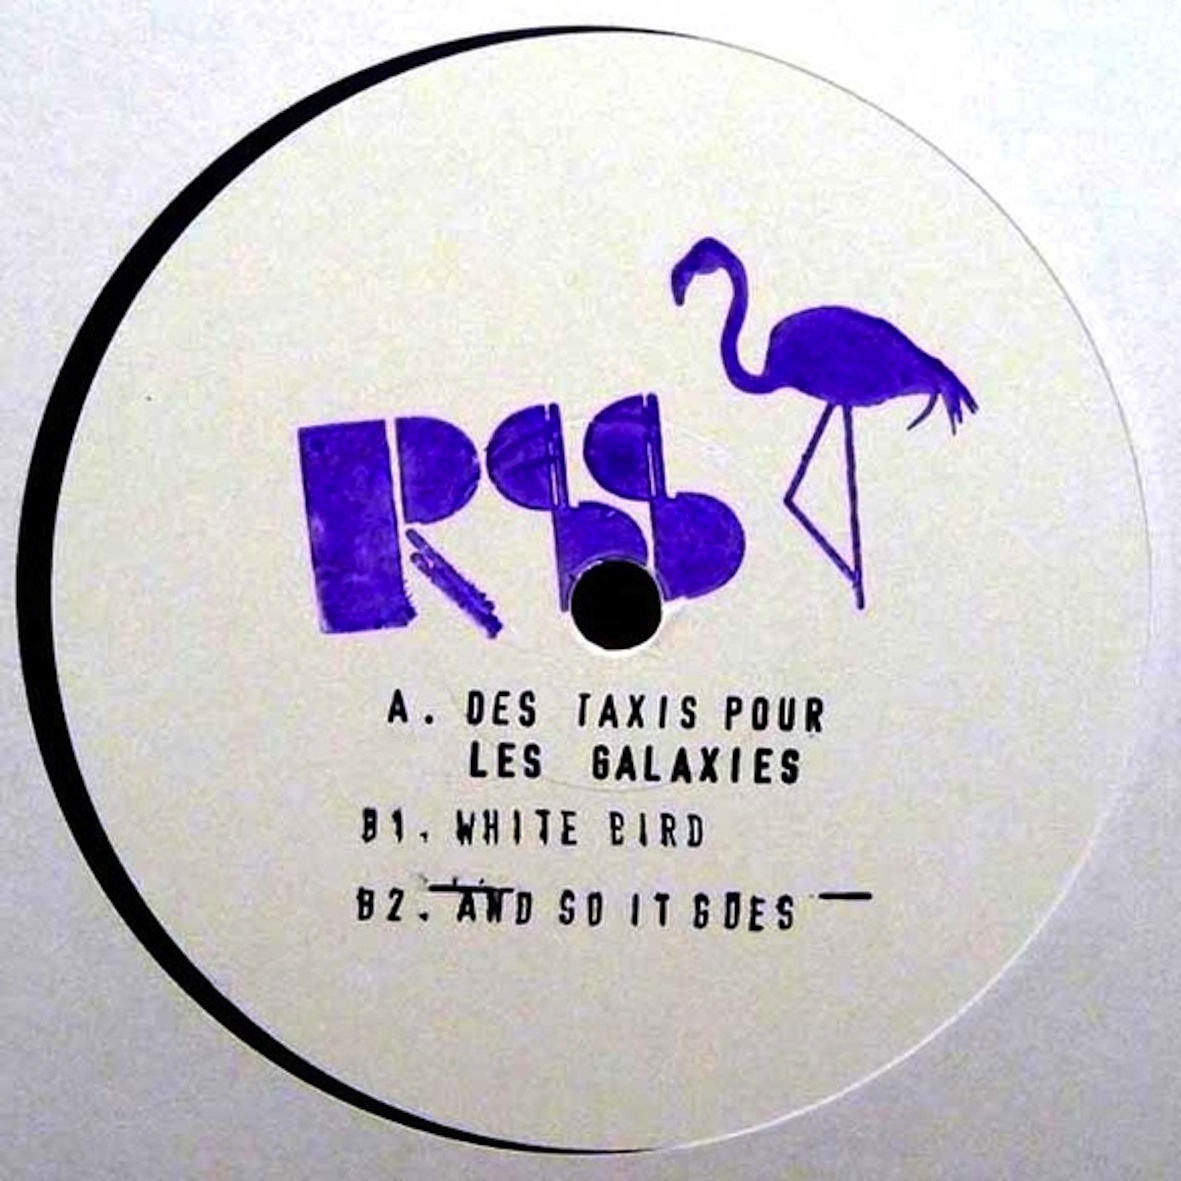 Reviews, Promo`d, Test Pressing, Dr Rob, RSS Disco, Very